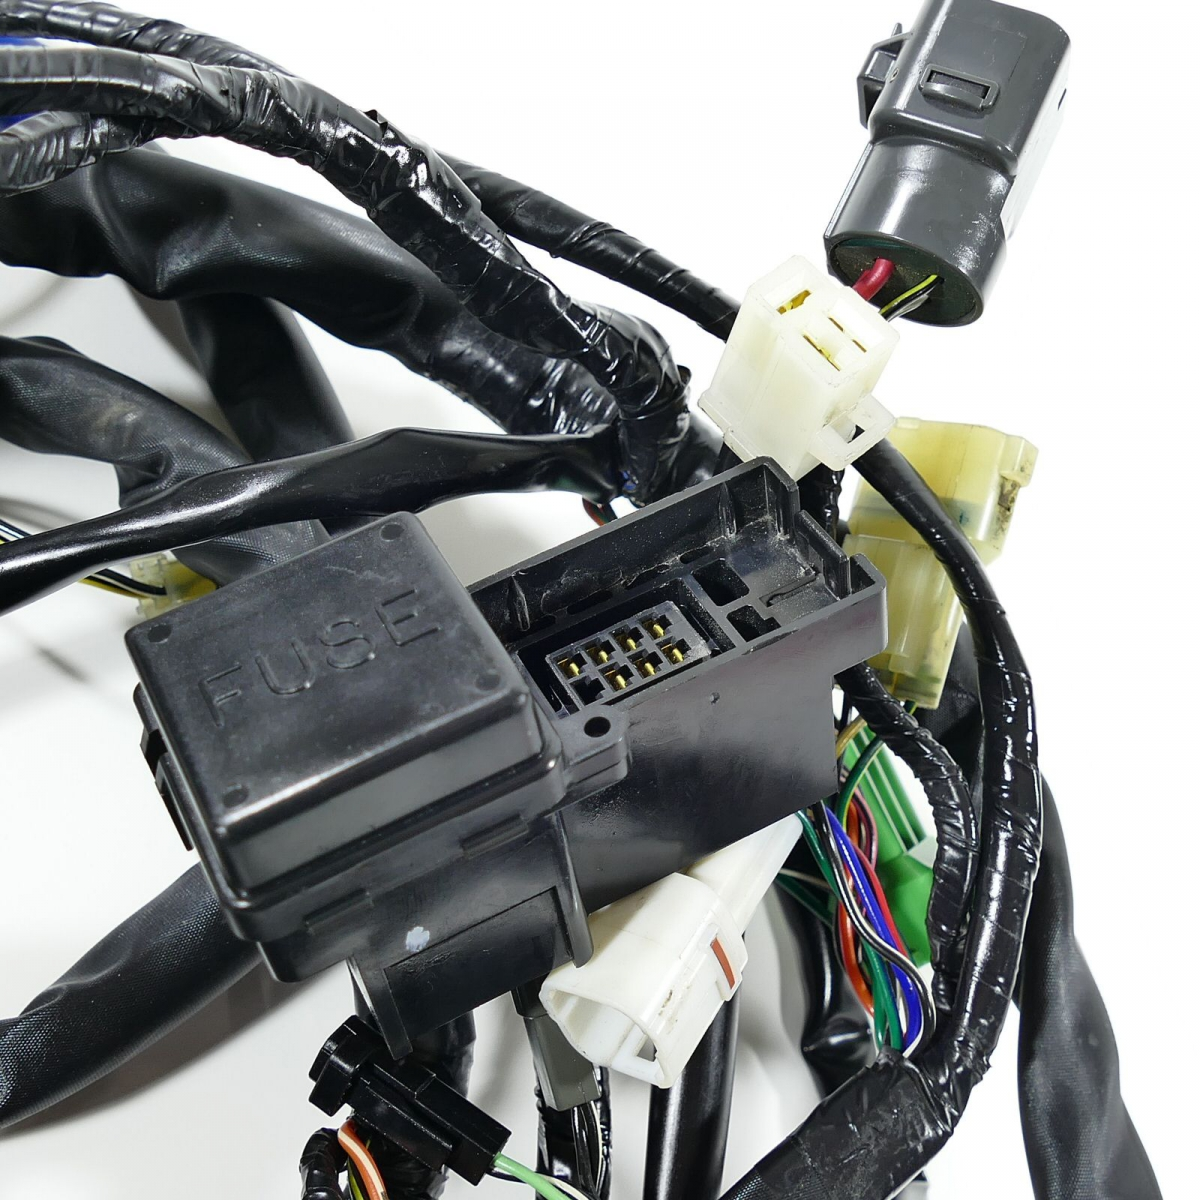 Wiring Harness Motor Wire Loom On 2000 Suzuki Gsxr 750 Wiring Harness